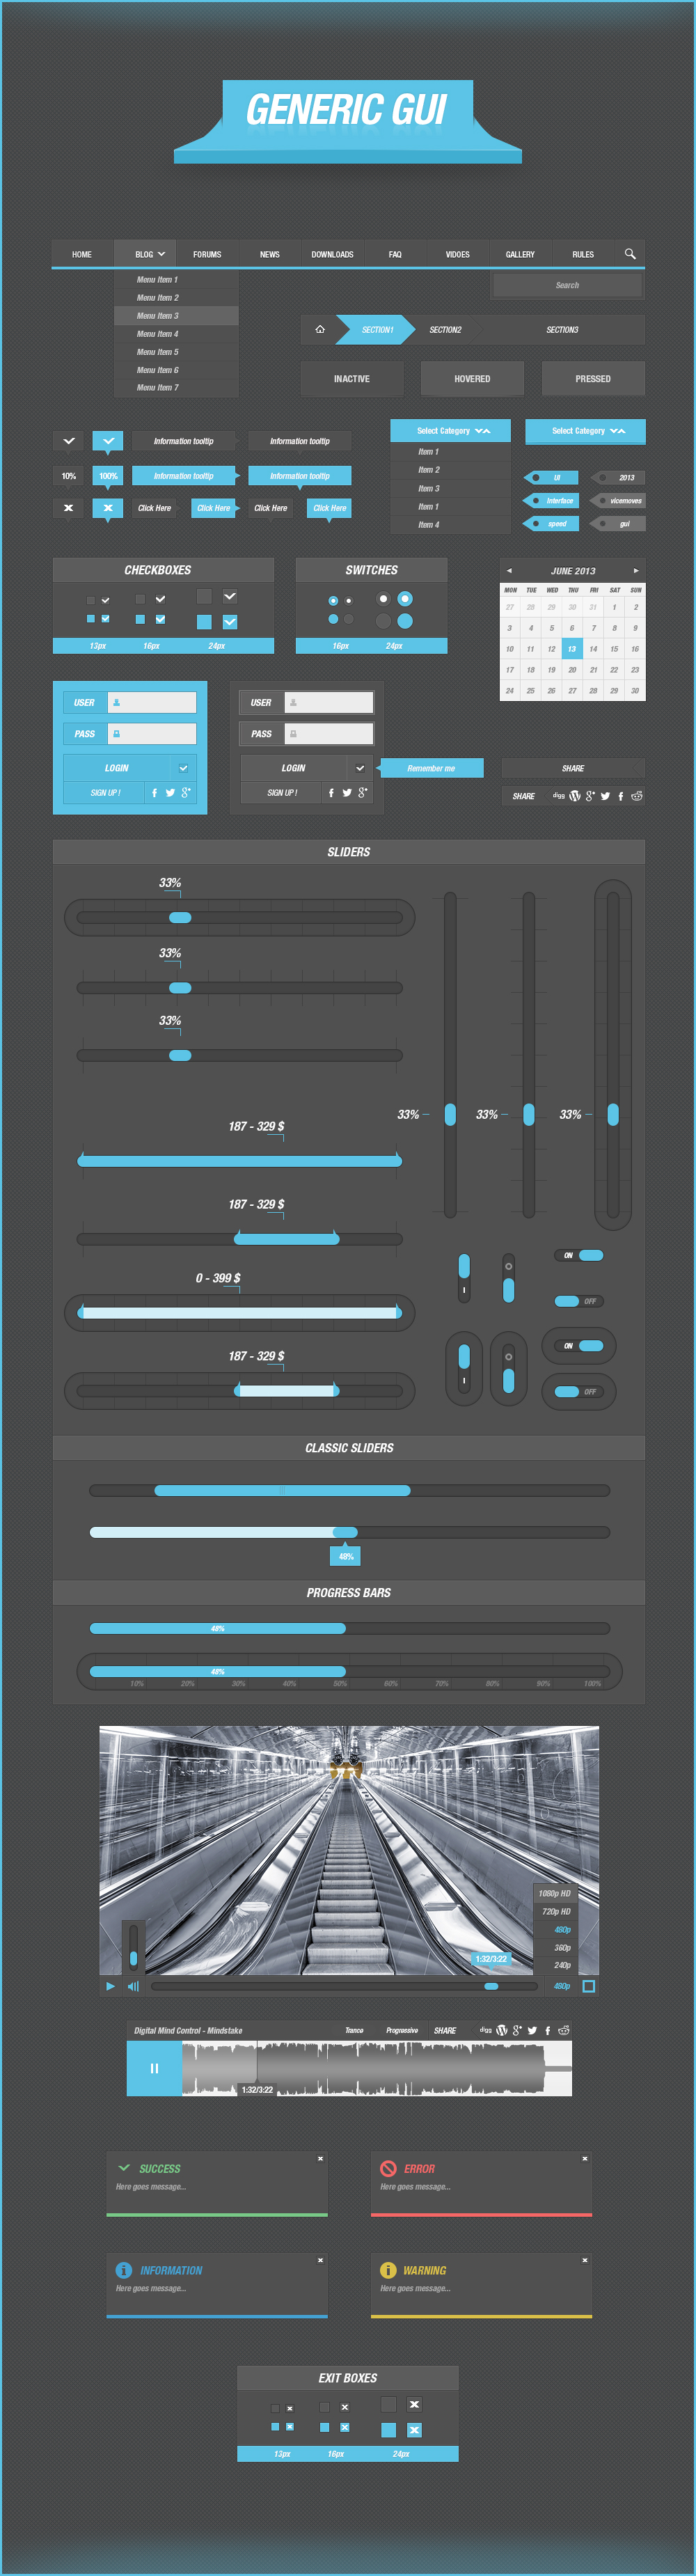 Generic GUI for Webpage / Application Design